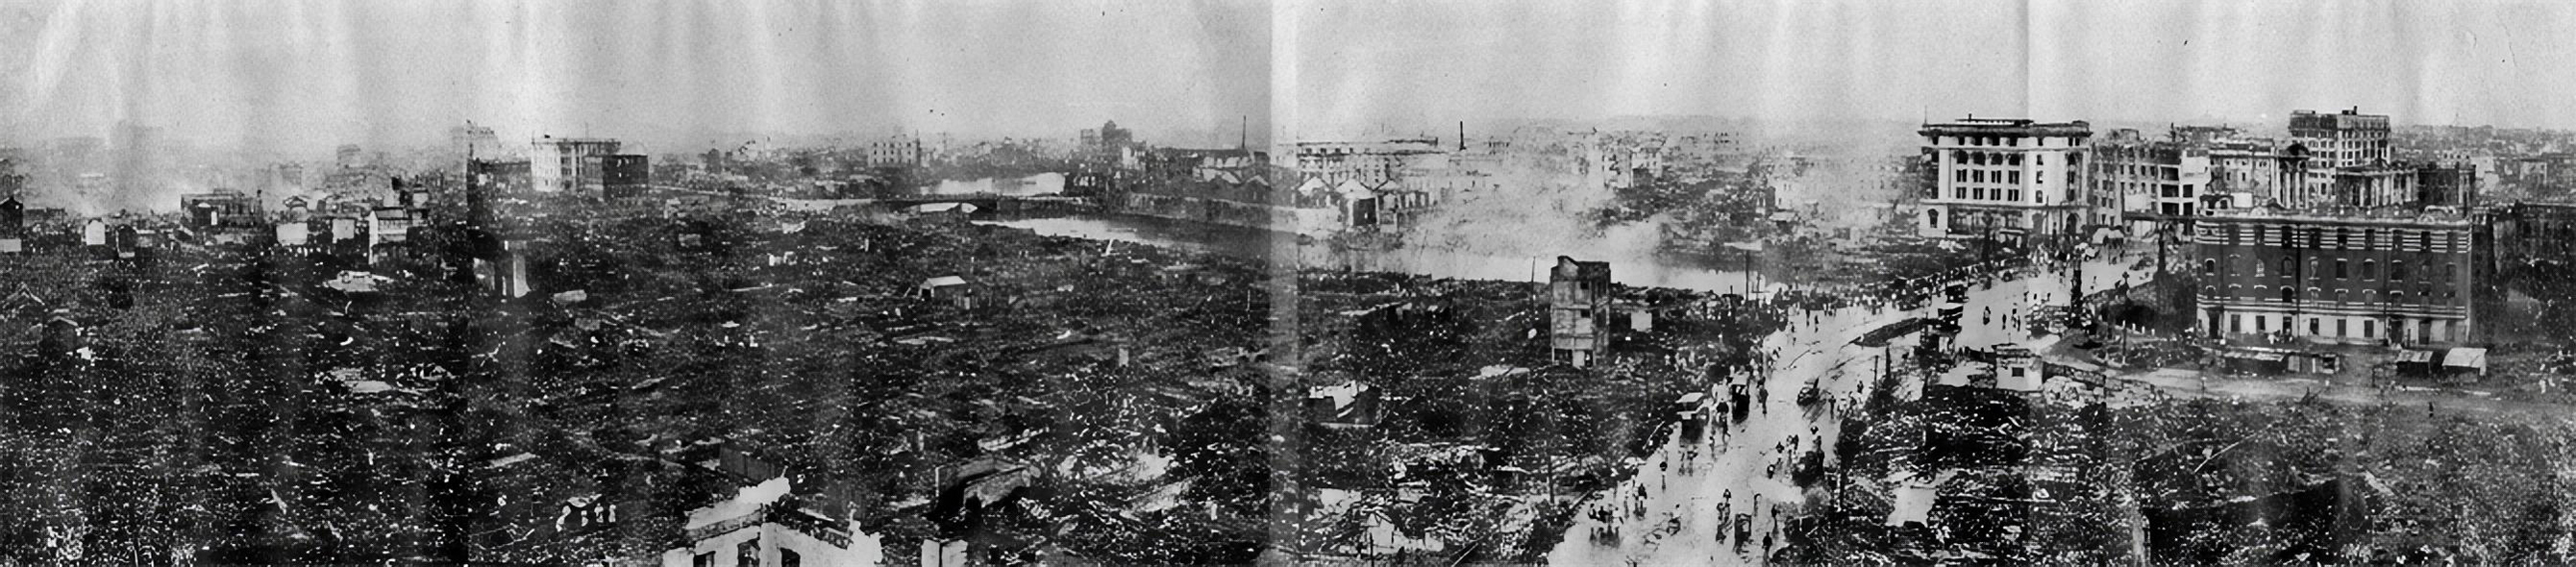 Desolation of Nihonbashi and Kanda after Kanto Earthquake.jpg